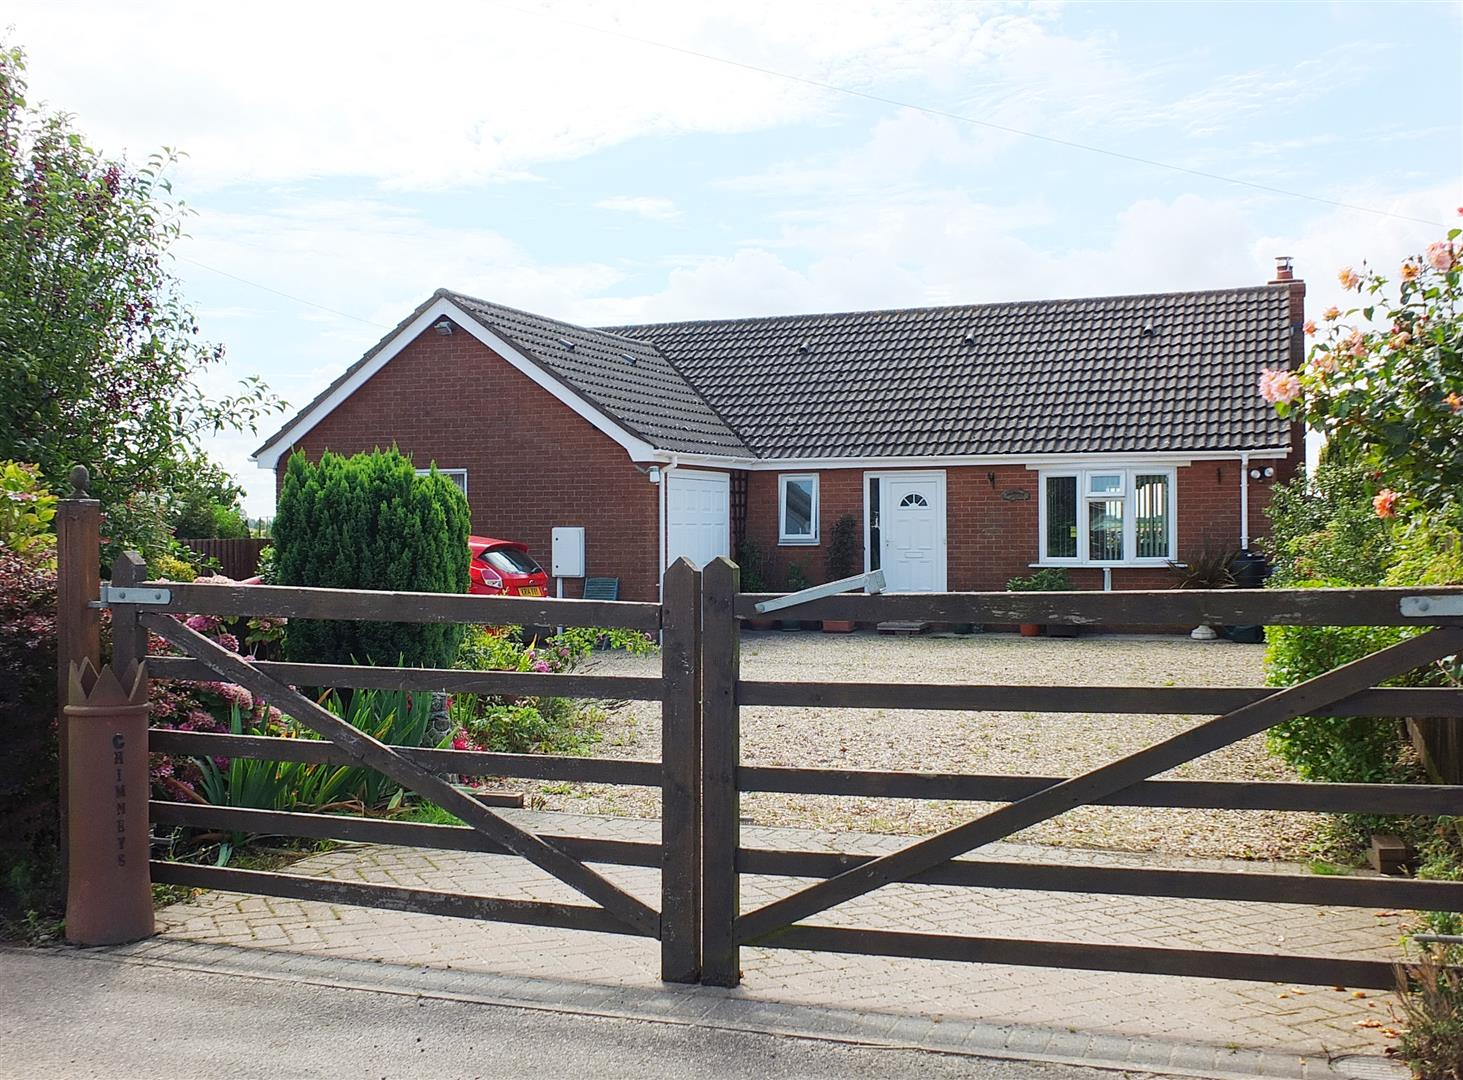 3 bed detached bungalow for sale in Gedney Drove End Spalding, PE12 9PD 0